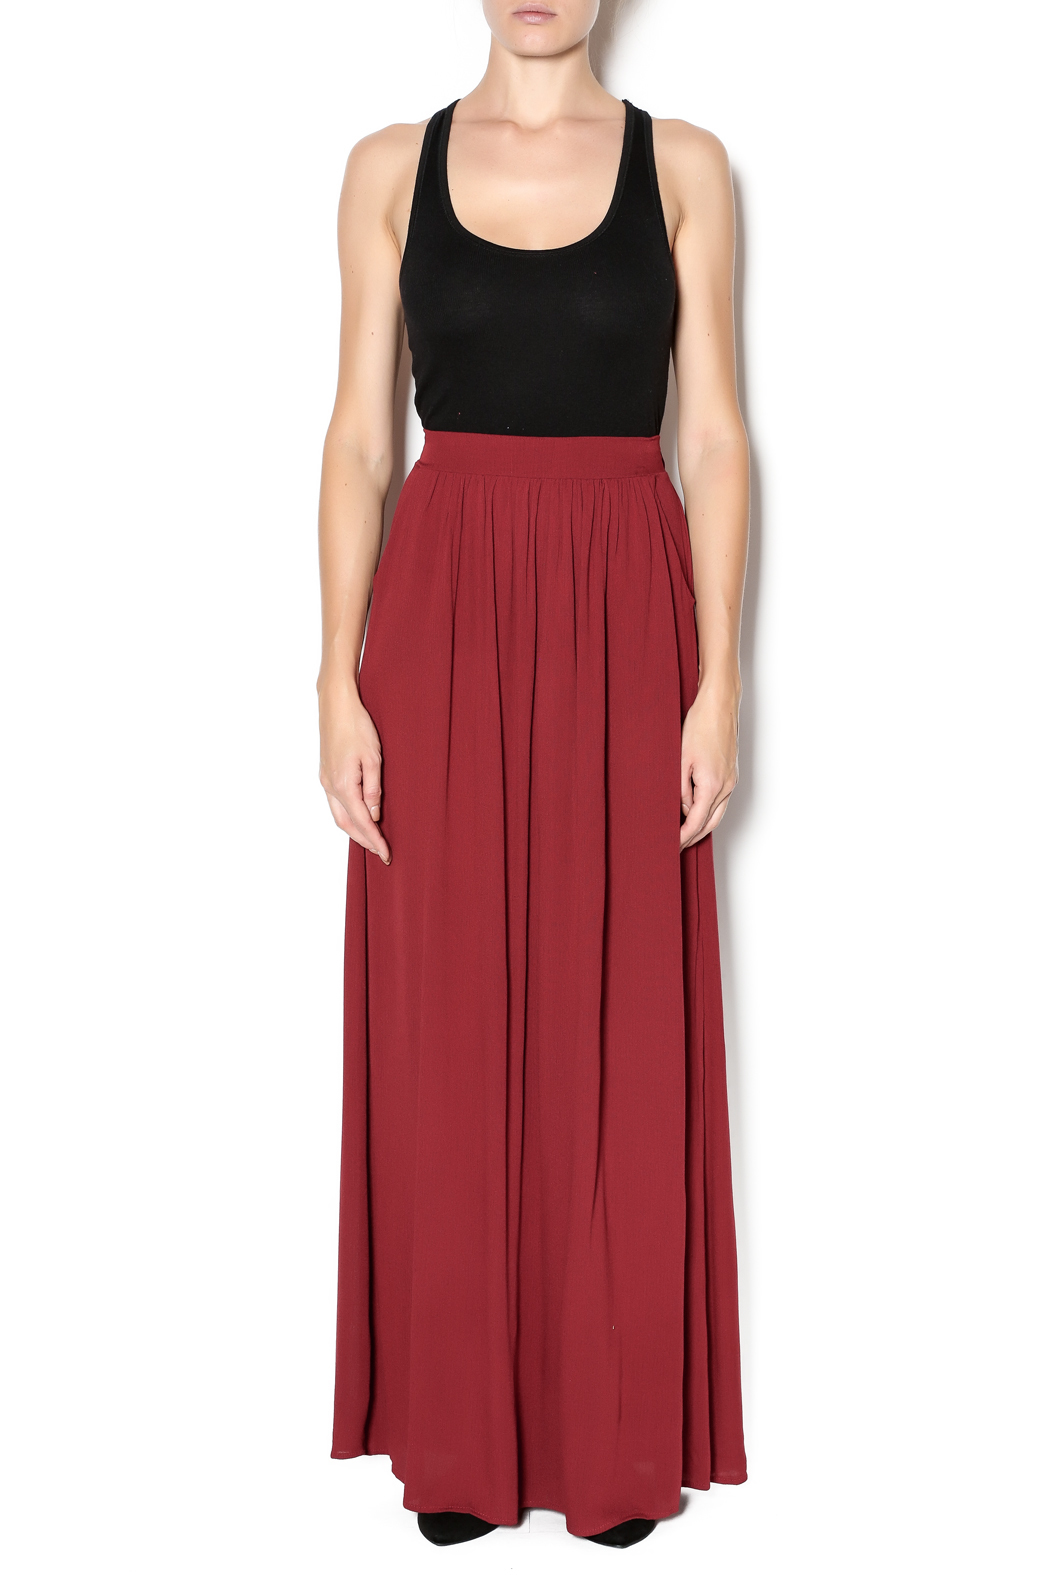 vanilla bay Maroon Maxi Skirt from Tennessee by Southern Muse ...